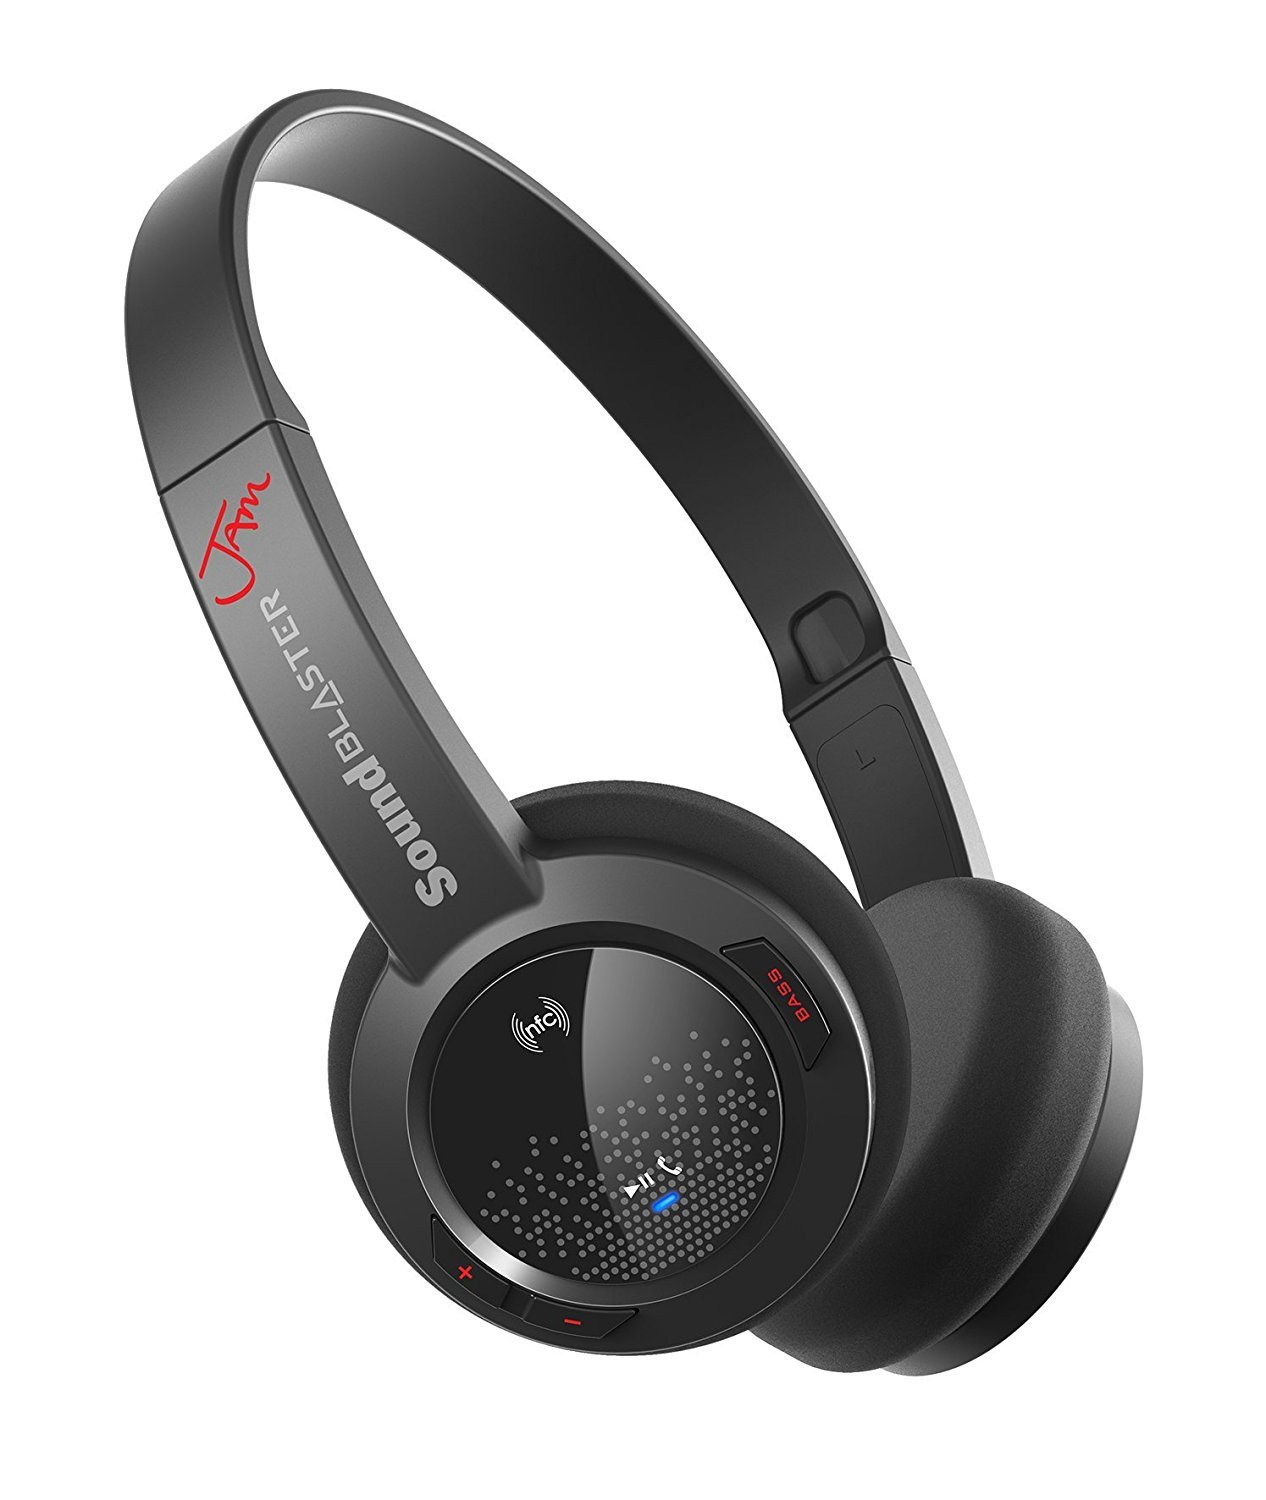 Creative Sound Blaster Jam Headset